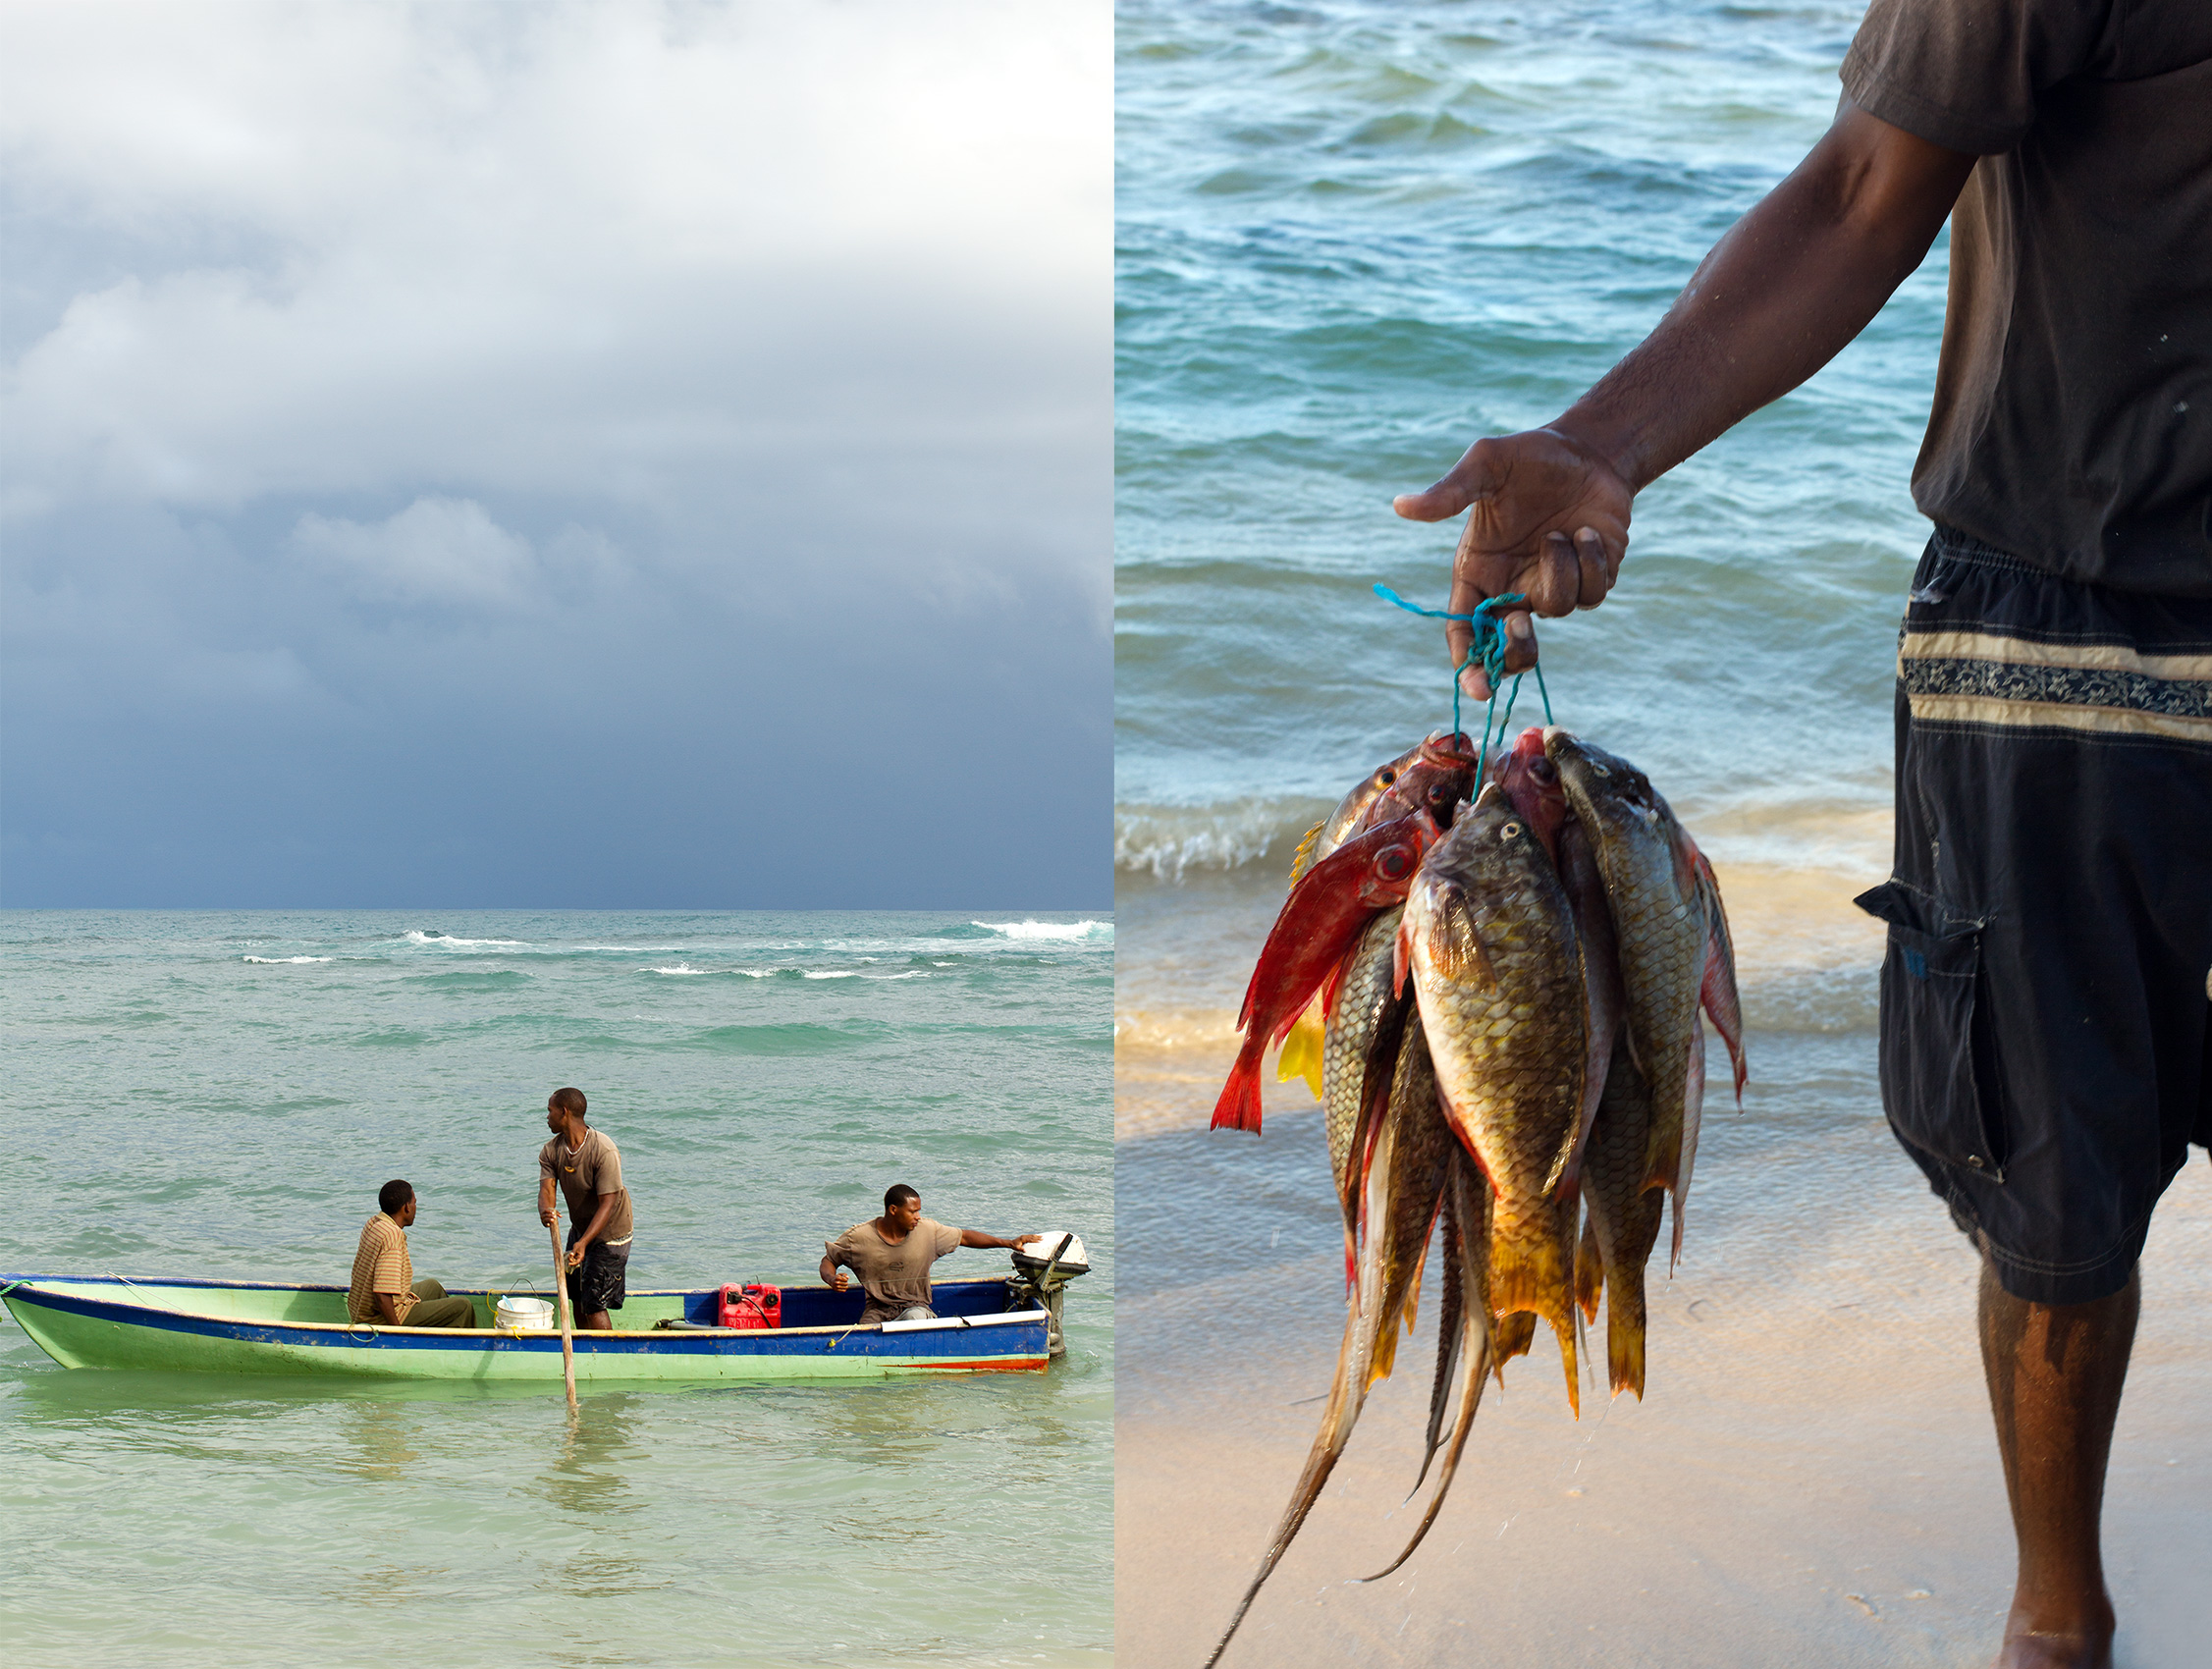 TRAVEL_CARIBBEAN_fish_ocean_fisherman_0077_2_WB2